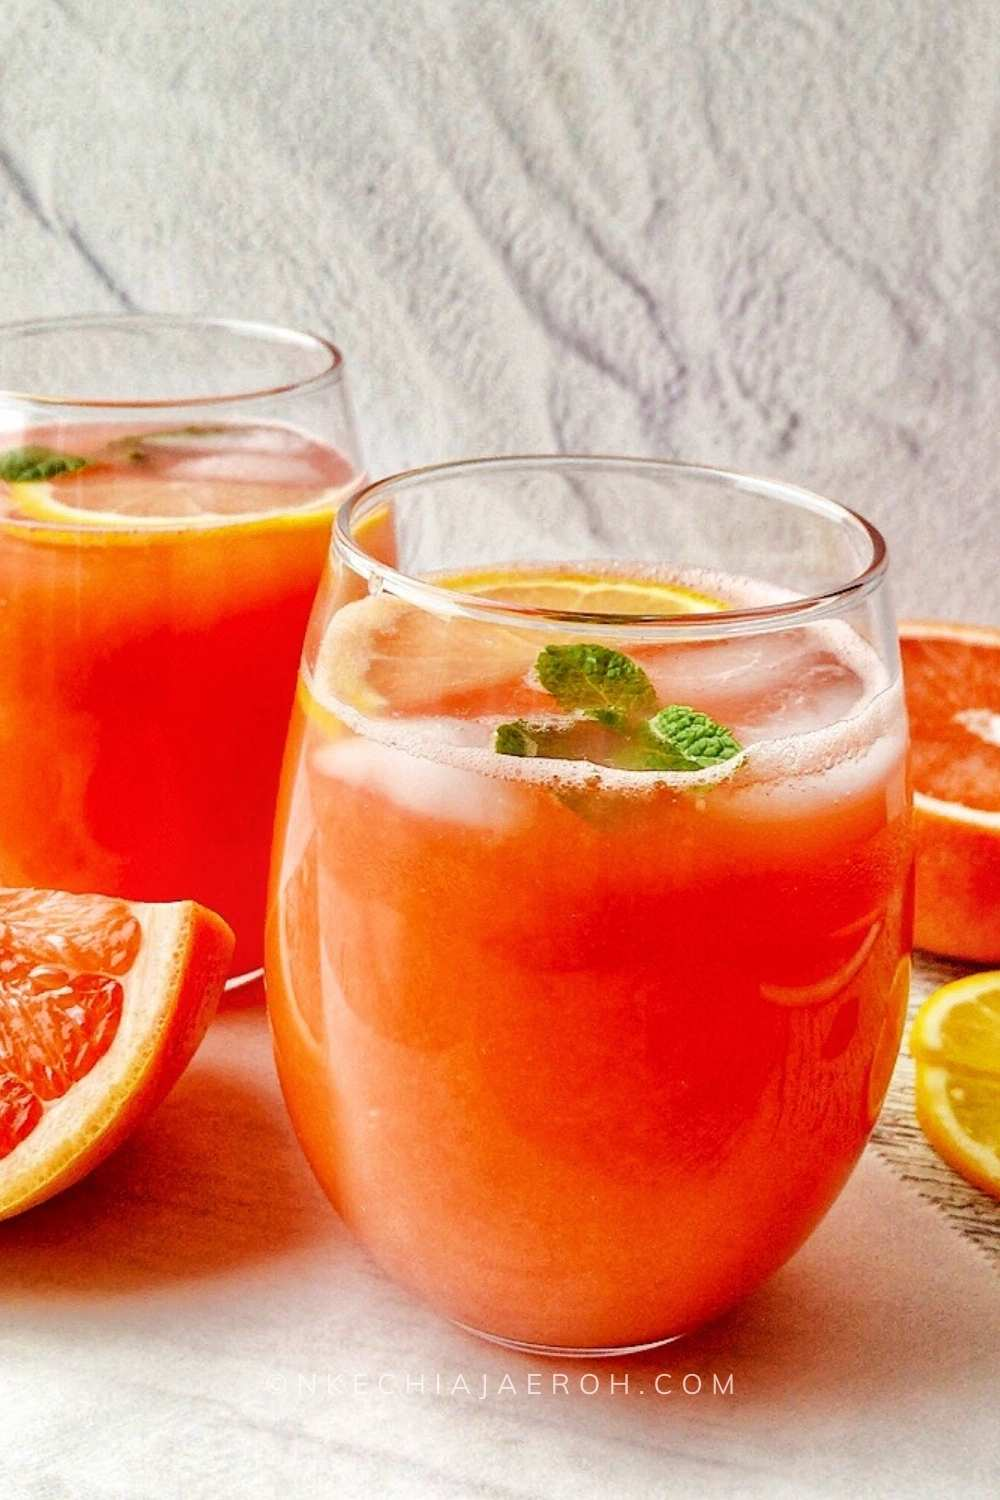 Grapefruit juice is juice from grapefruit; this juice is rich in many antioxidants, healthy nutrients, and minerals. Homemade grapefruit juice is always the best because it does not have artificial preservatives or additives!